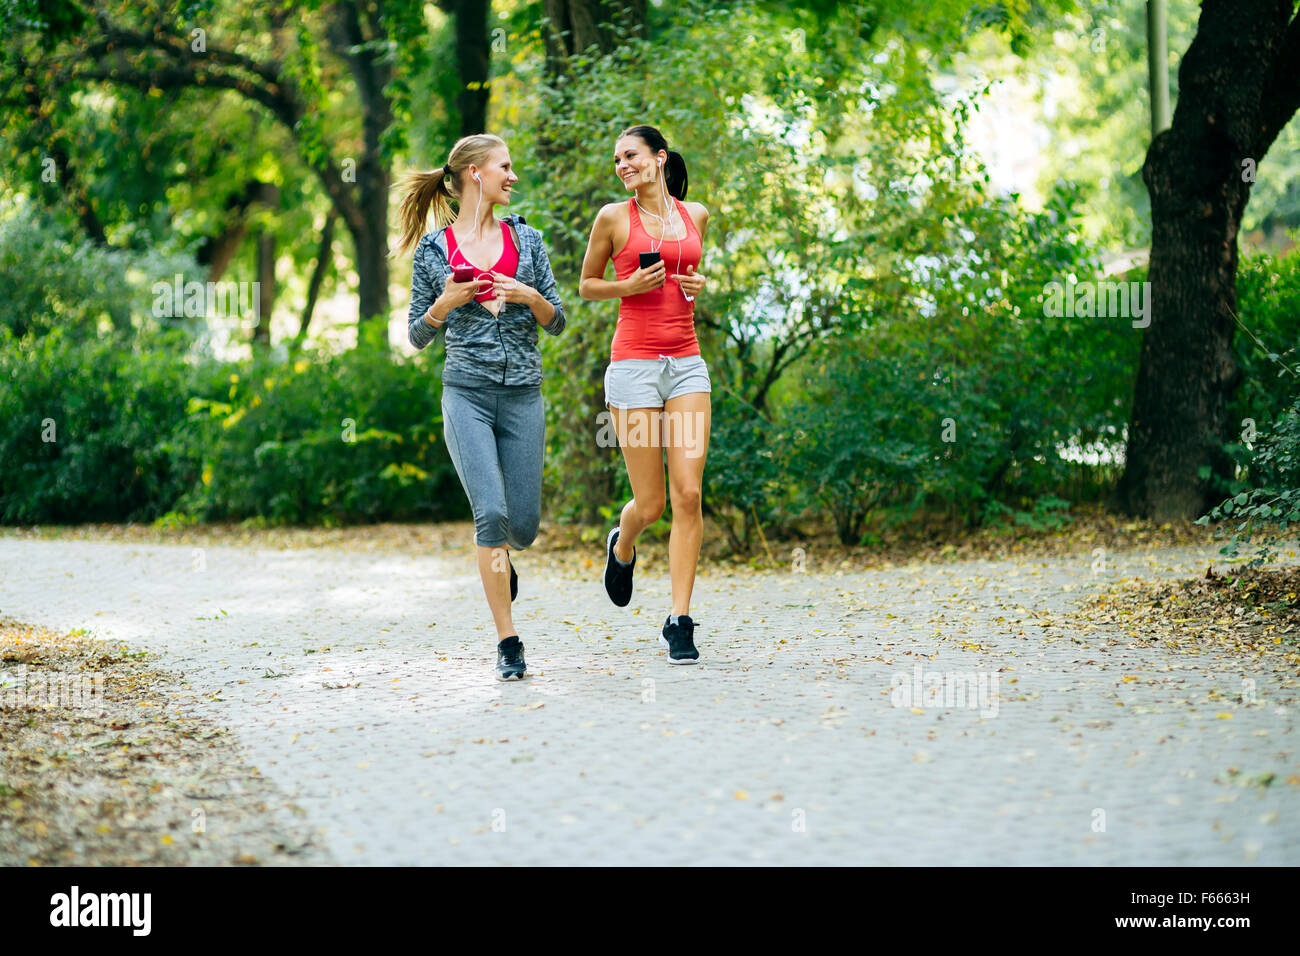 Energetic young women running outdoors in park to keep their bodies in shape - Stock Image